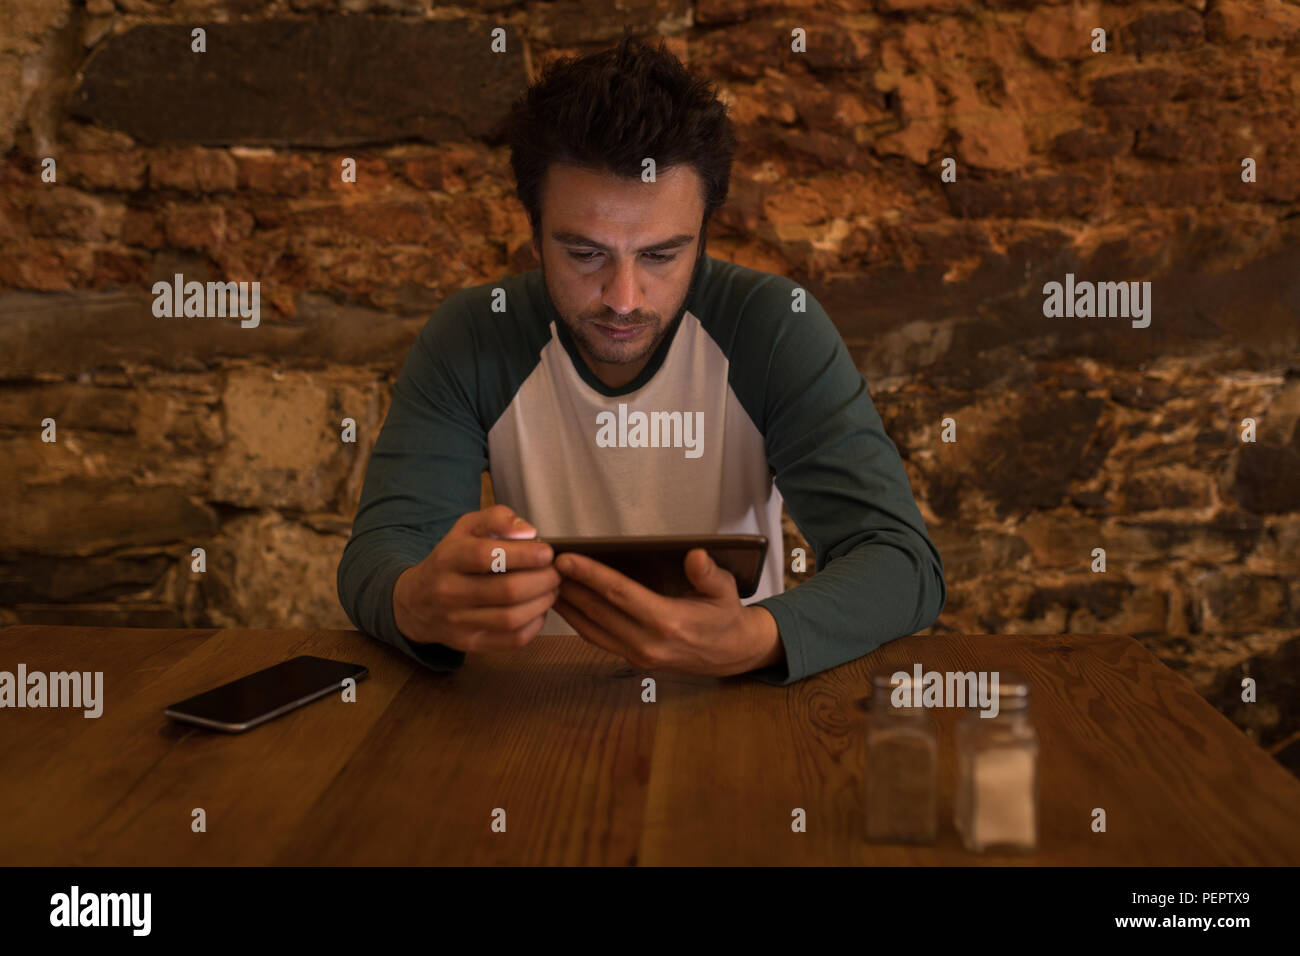 Businessperson using a digital tab - Stock Image